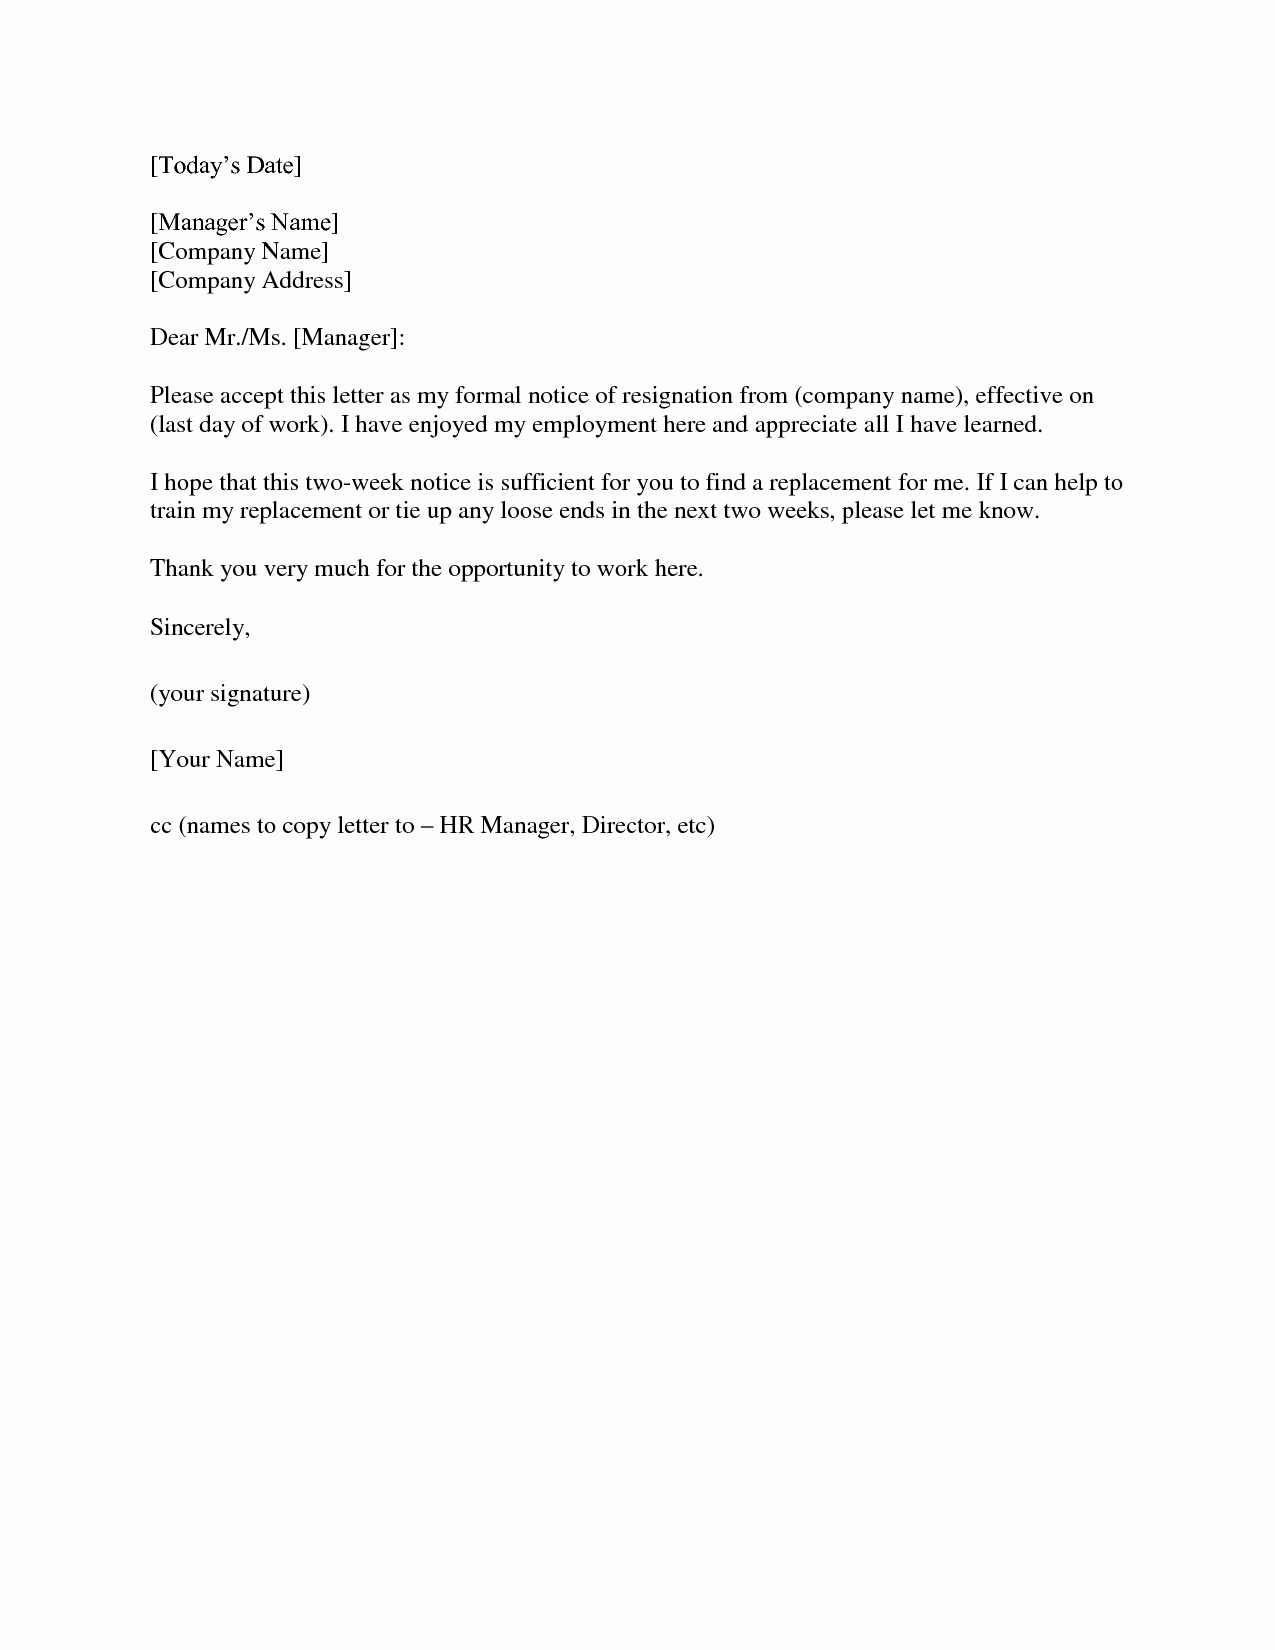 Resignation Letter 2 Week Notice Elegant Two Weeks Notice Letter Template